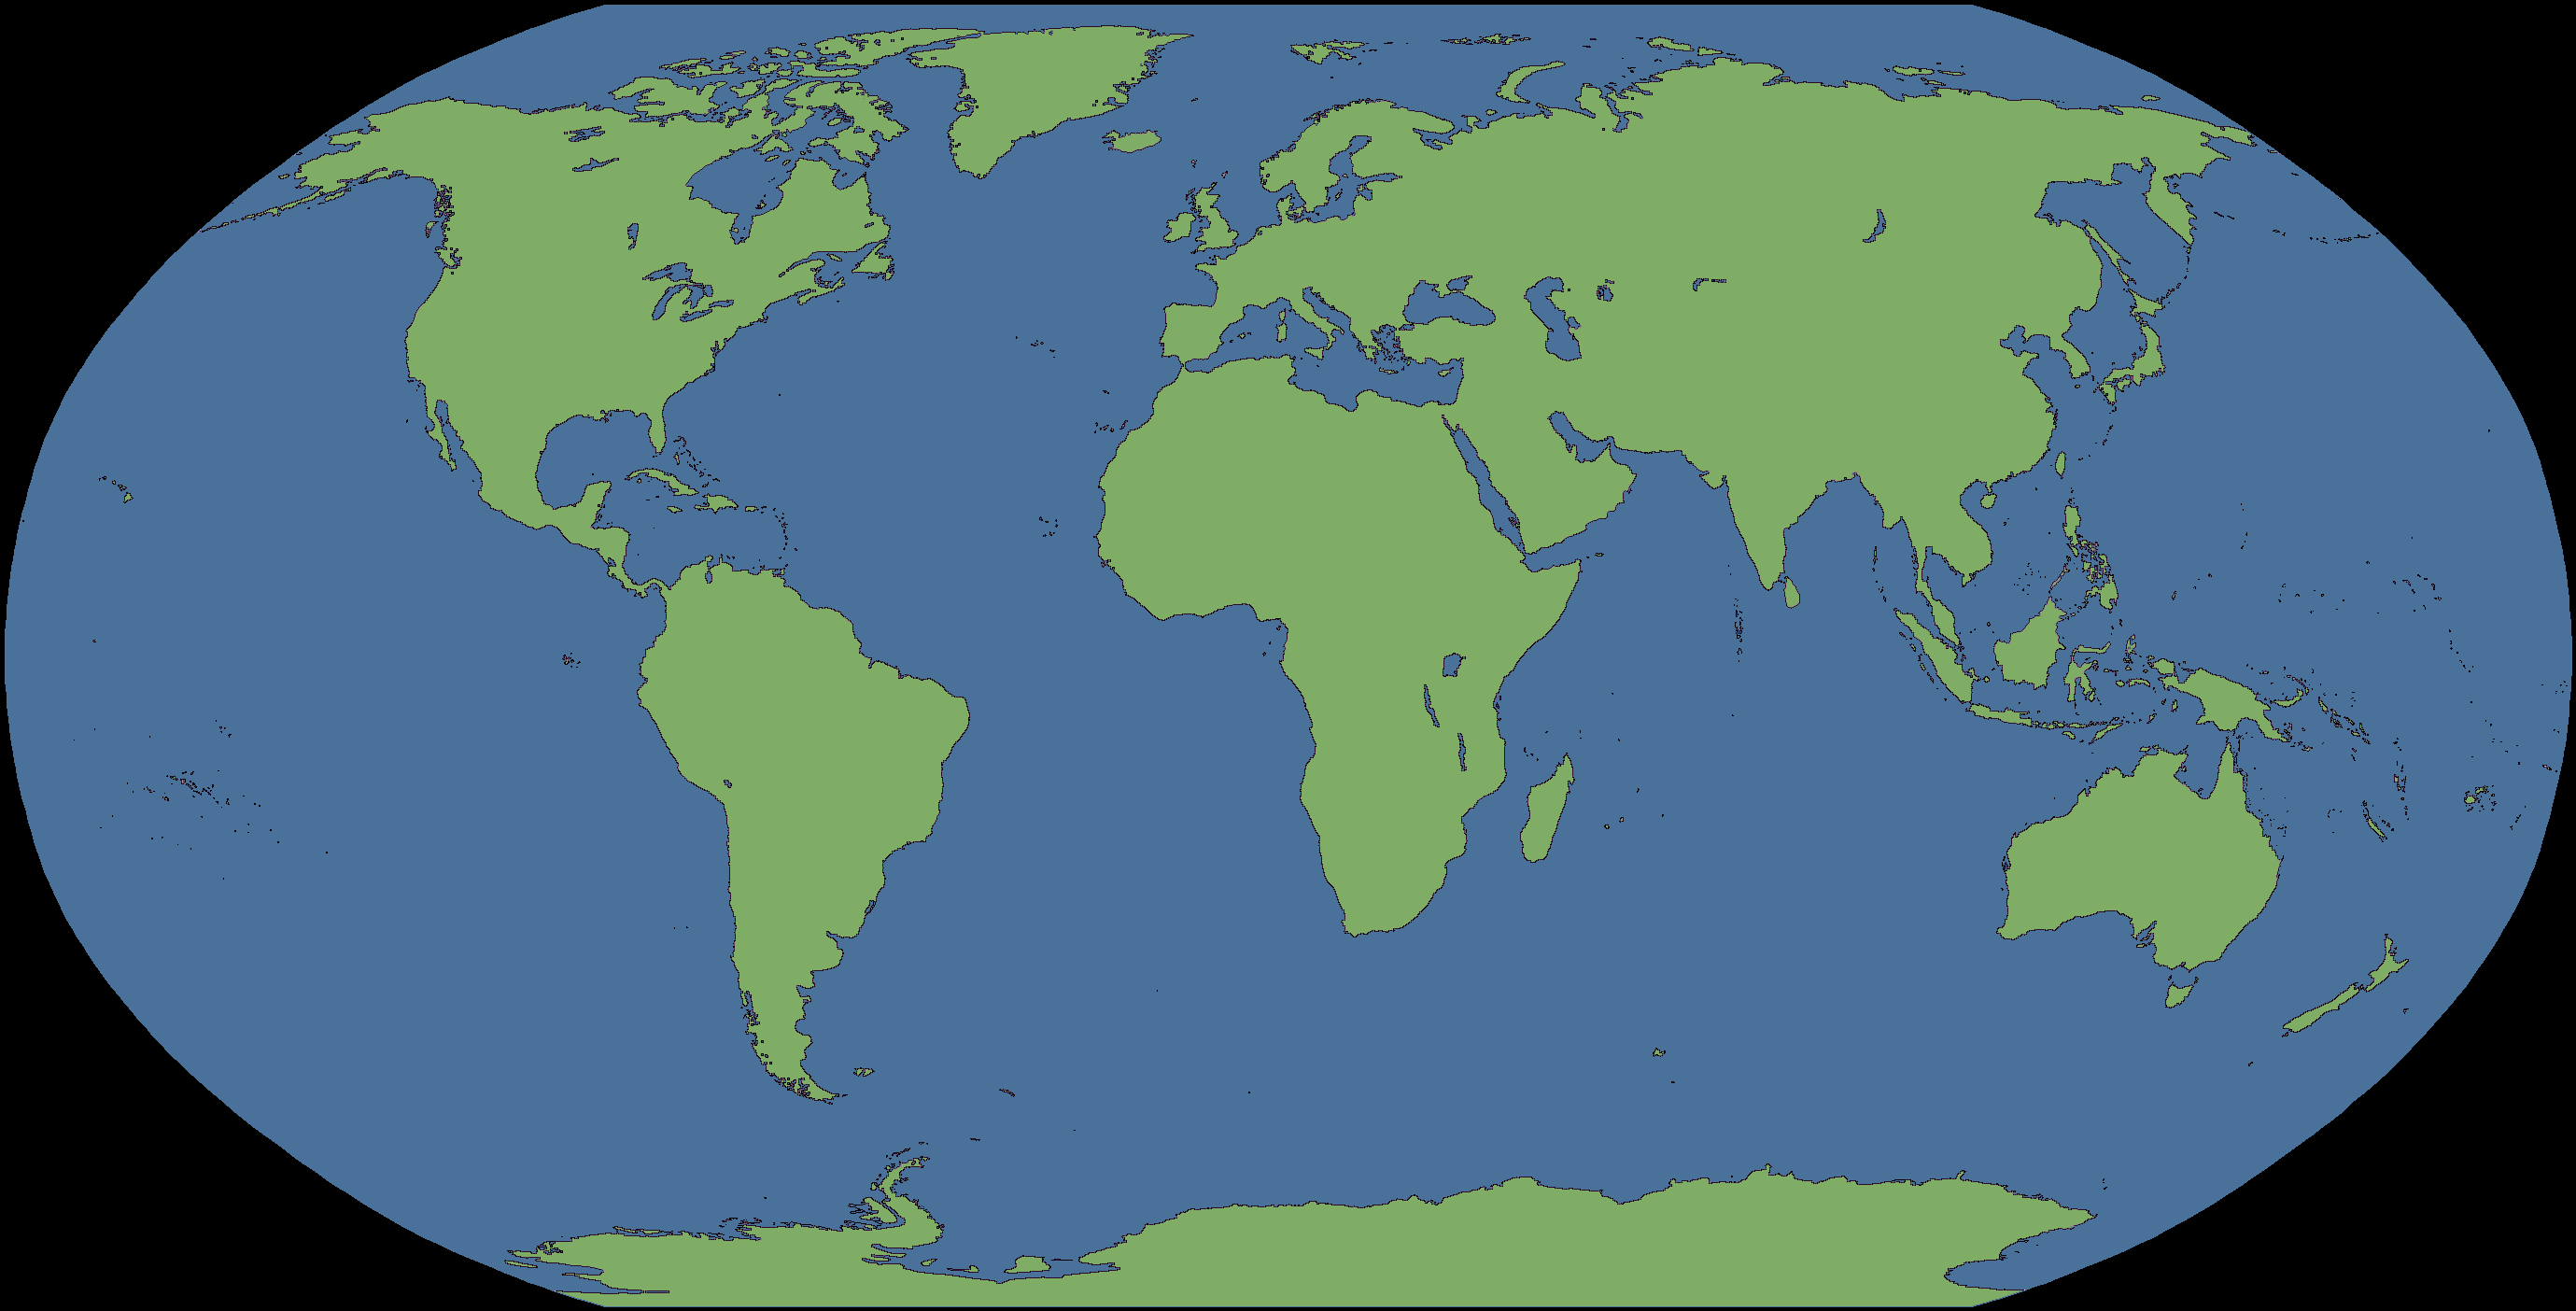 A Blank Map Thread Page Alternate History Discussion - Large blank world map